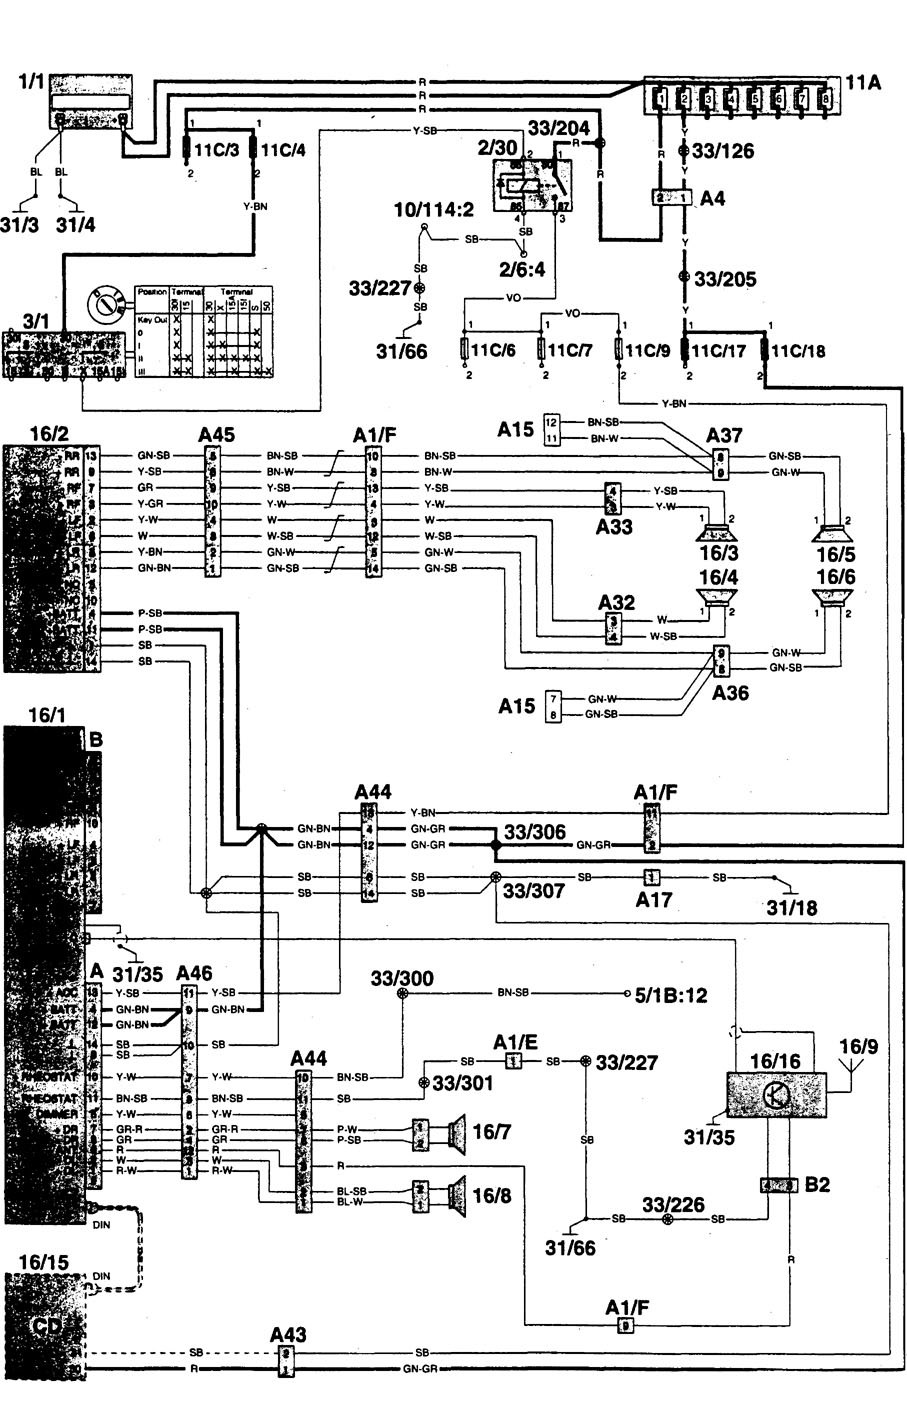 Wiring Diagram Volvo 960 : Volvo  wiring diagrams audio carknowledge